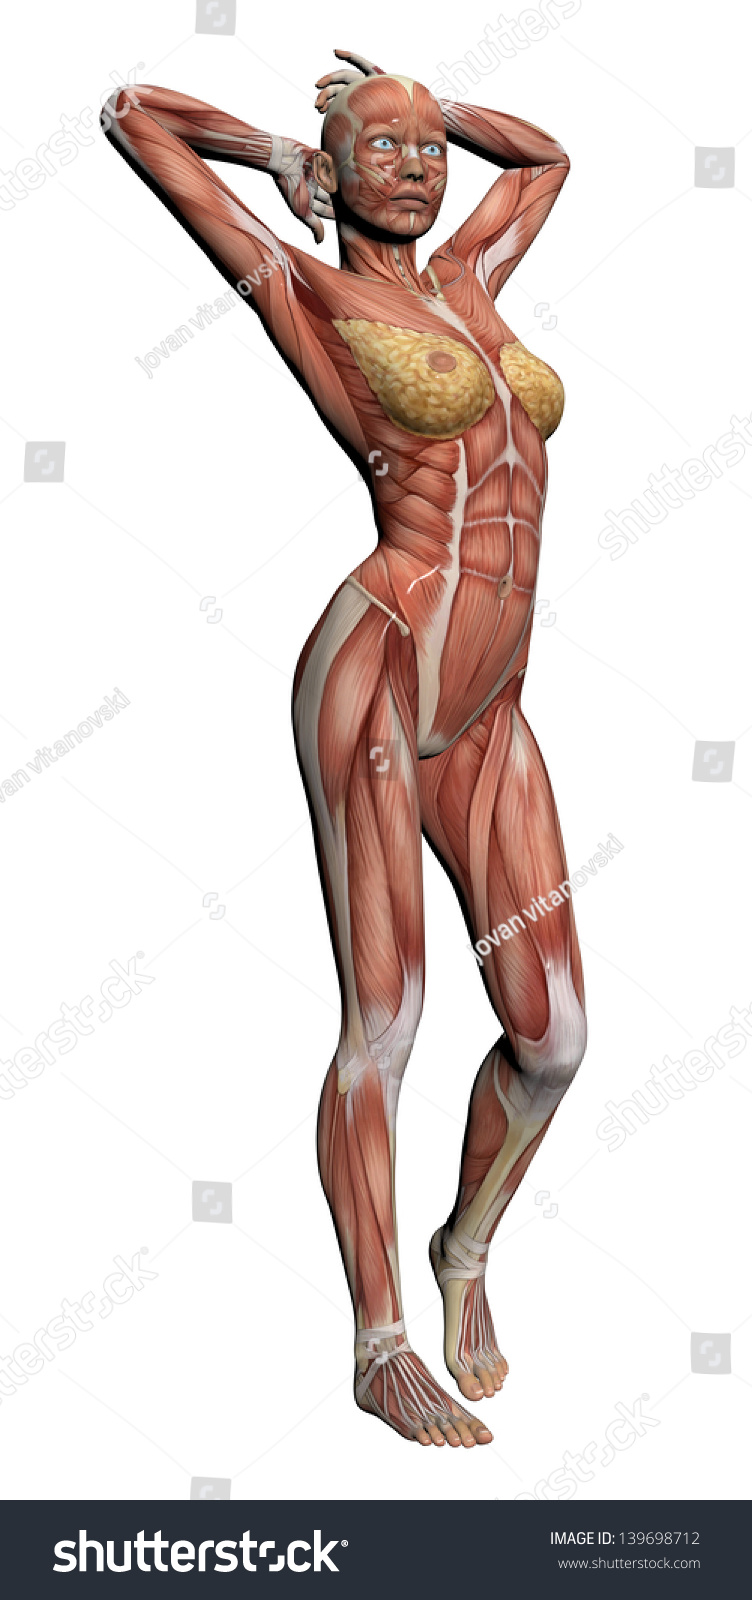 Human Anatomy Female Muscles Made 3 D Stock Illustration Royalty